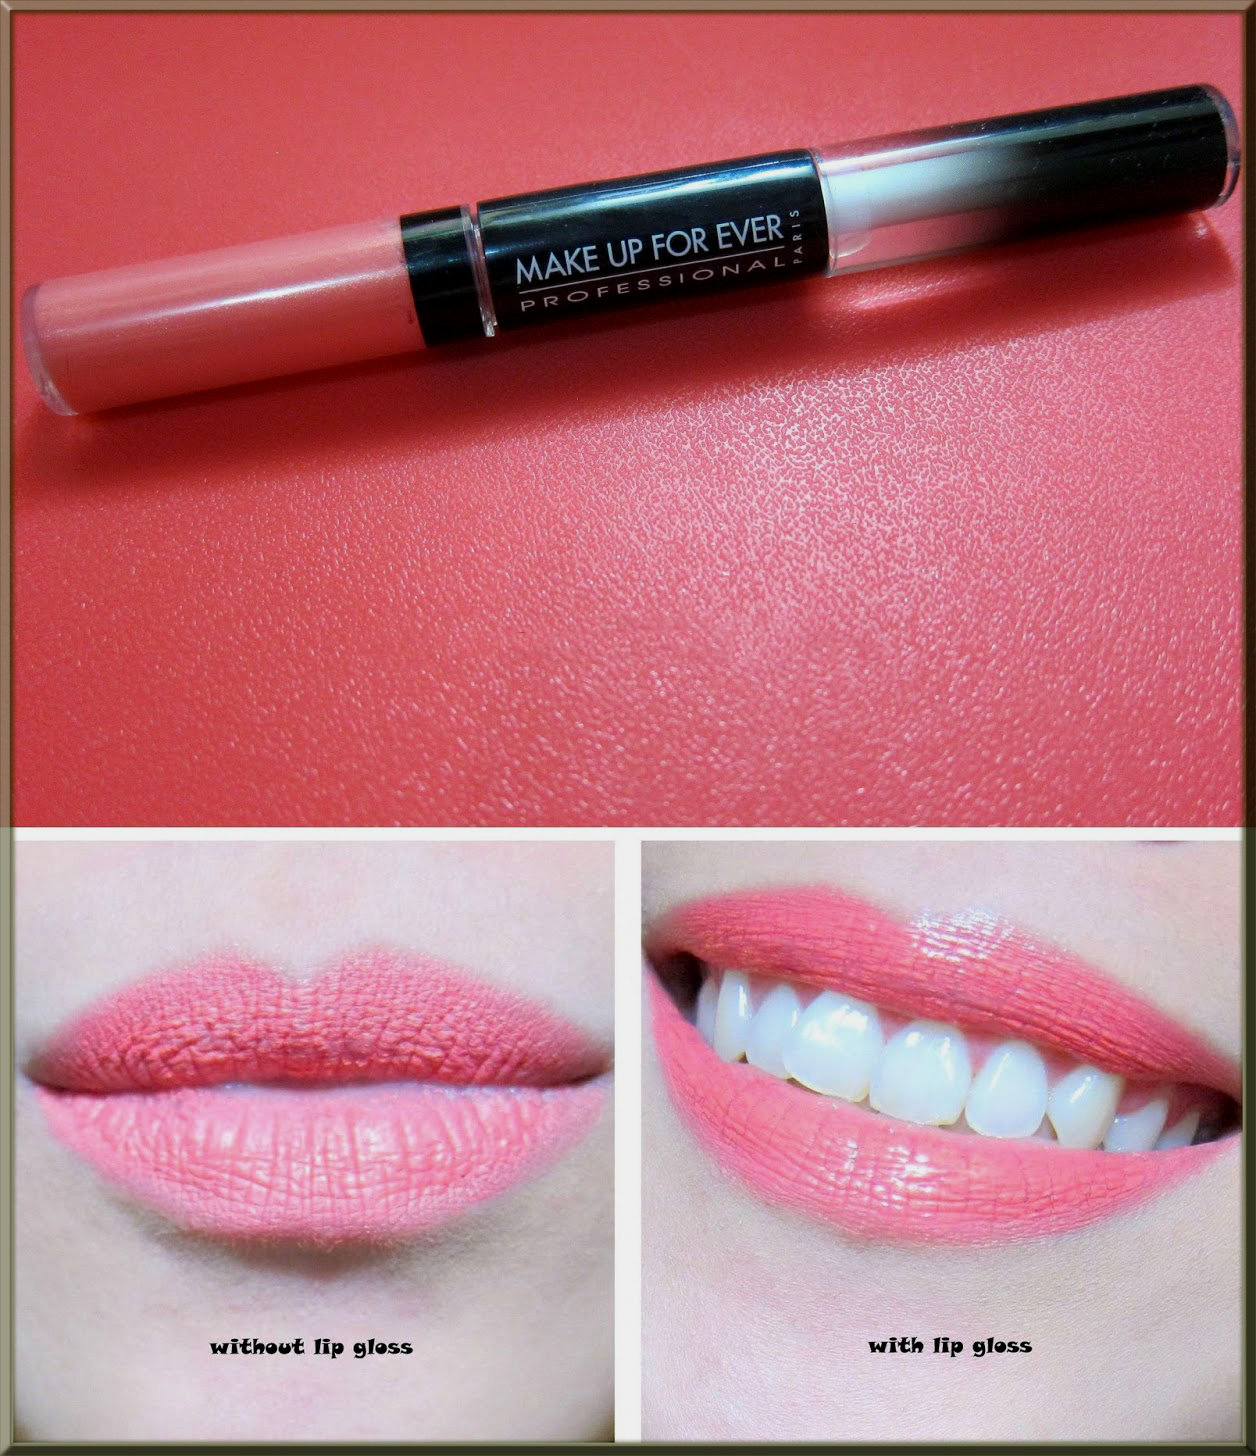 Make Up For Ever the best waterproof lipsticks